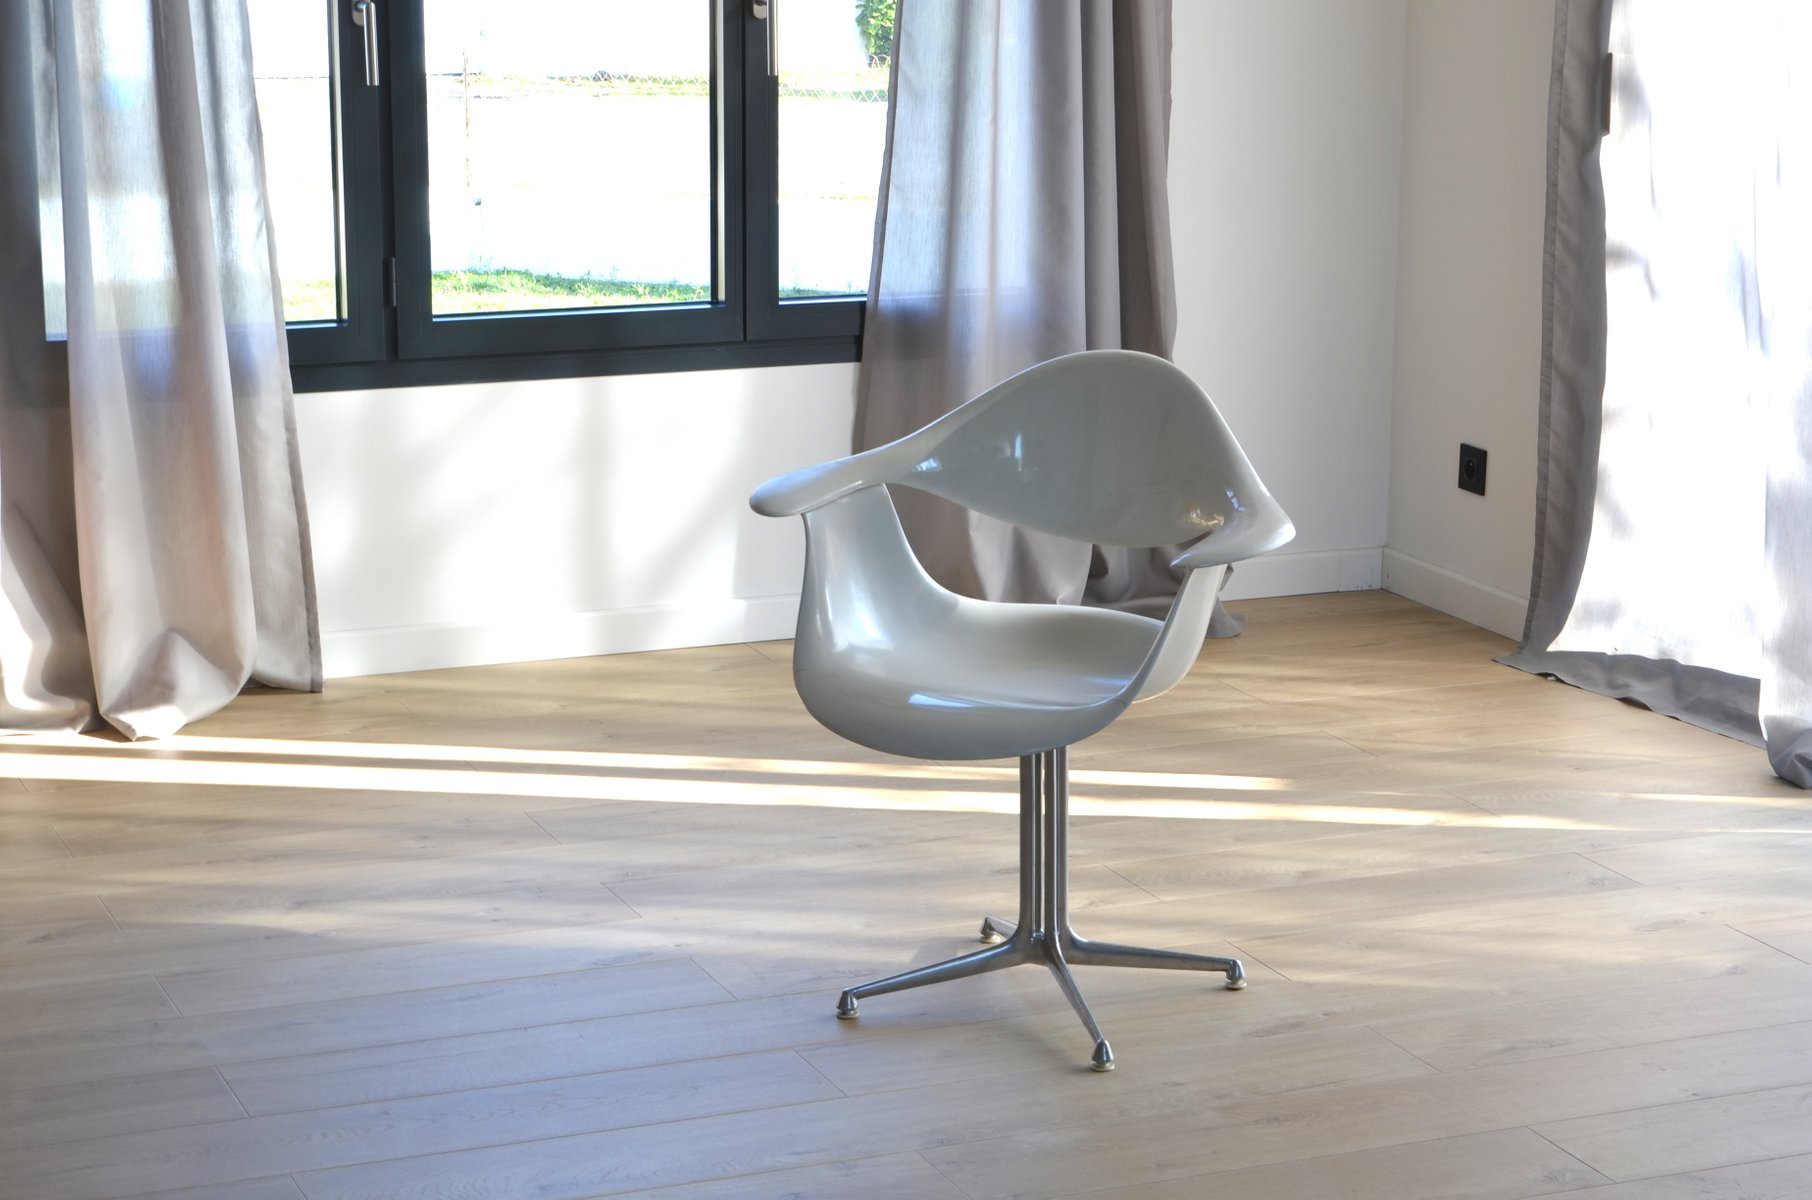 Daf chair by george nelson for herman miller 1950s